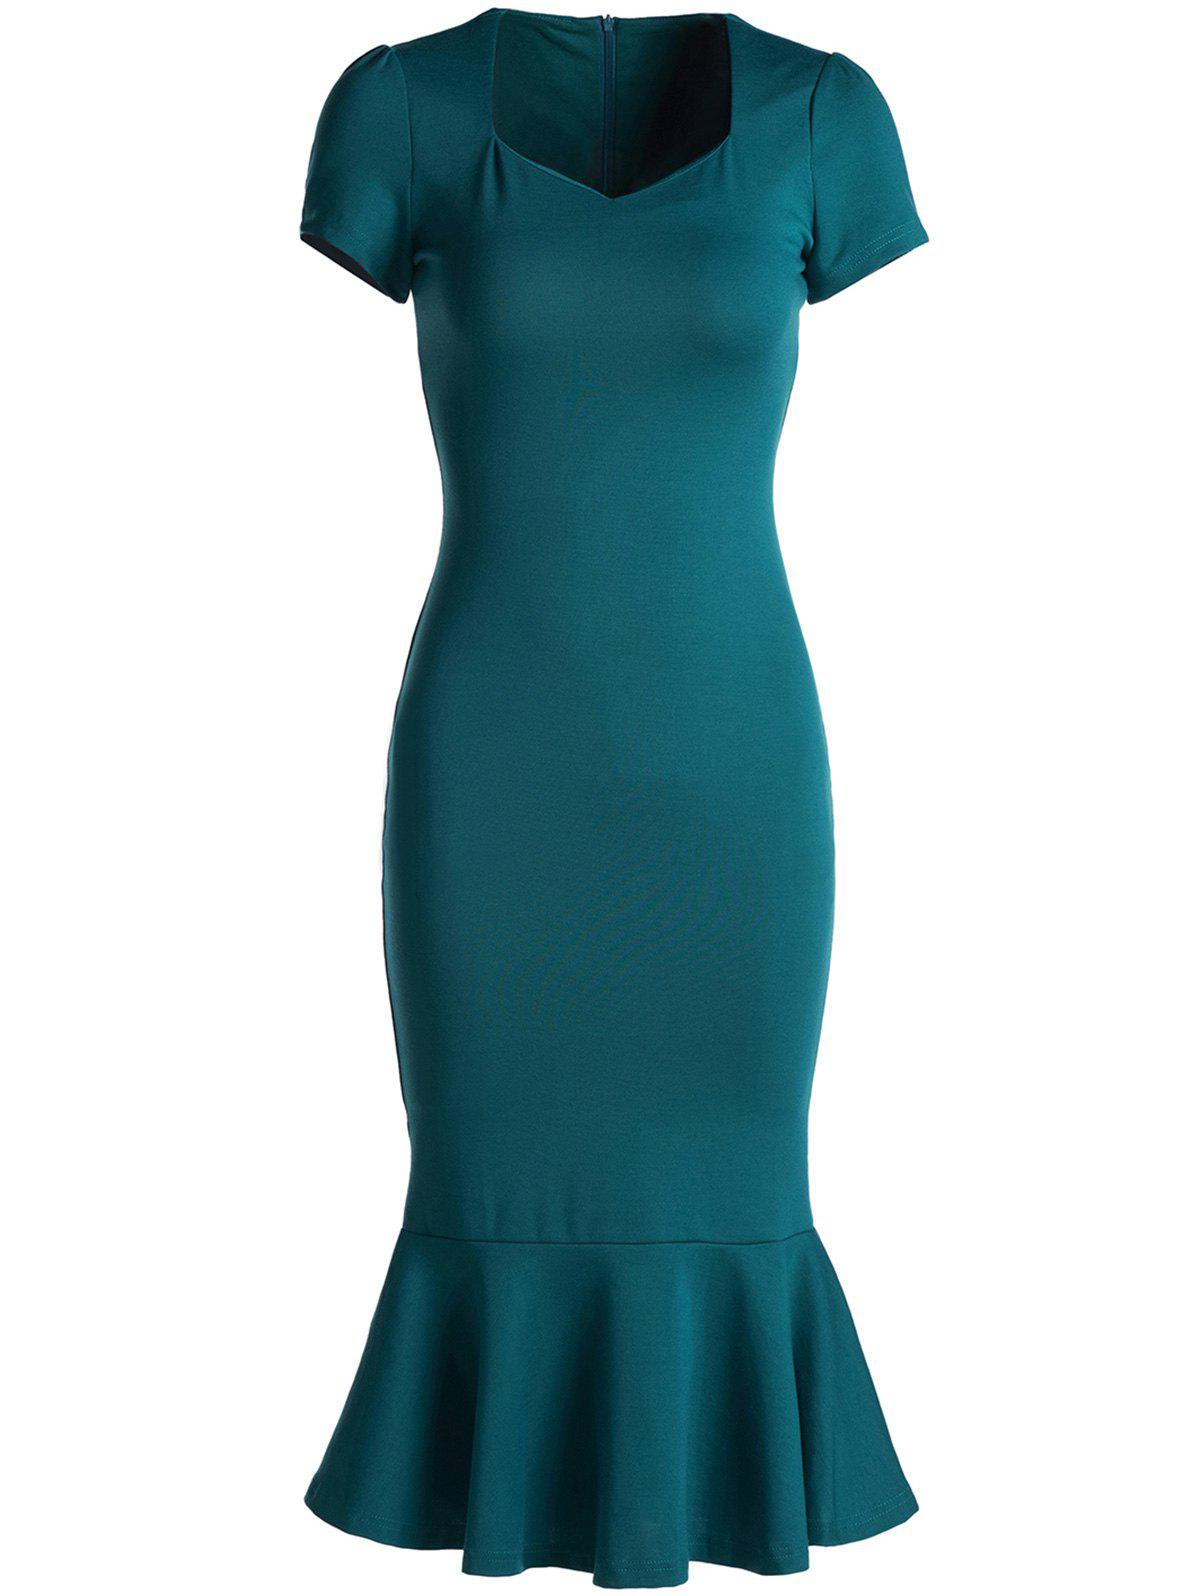 Elegant Green Sweetheart Neck Bodycon Fishtail Dress For Women принтер hp color laserjet enterprise m553n